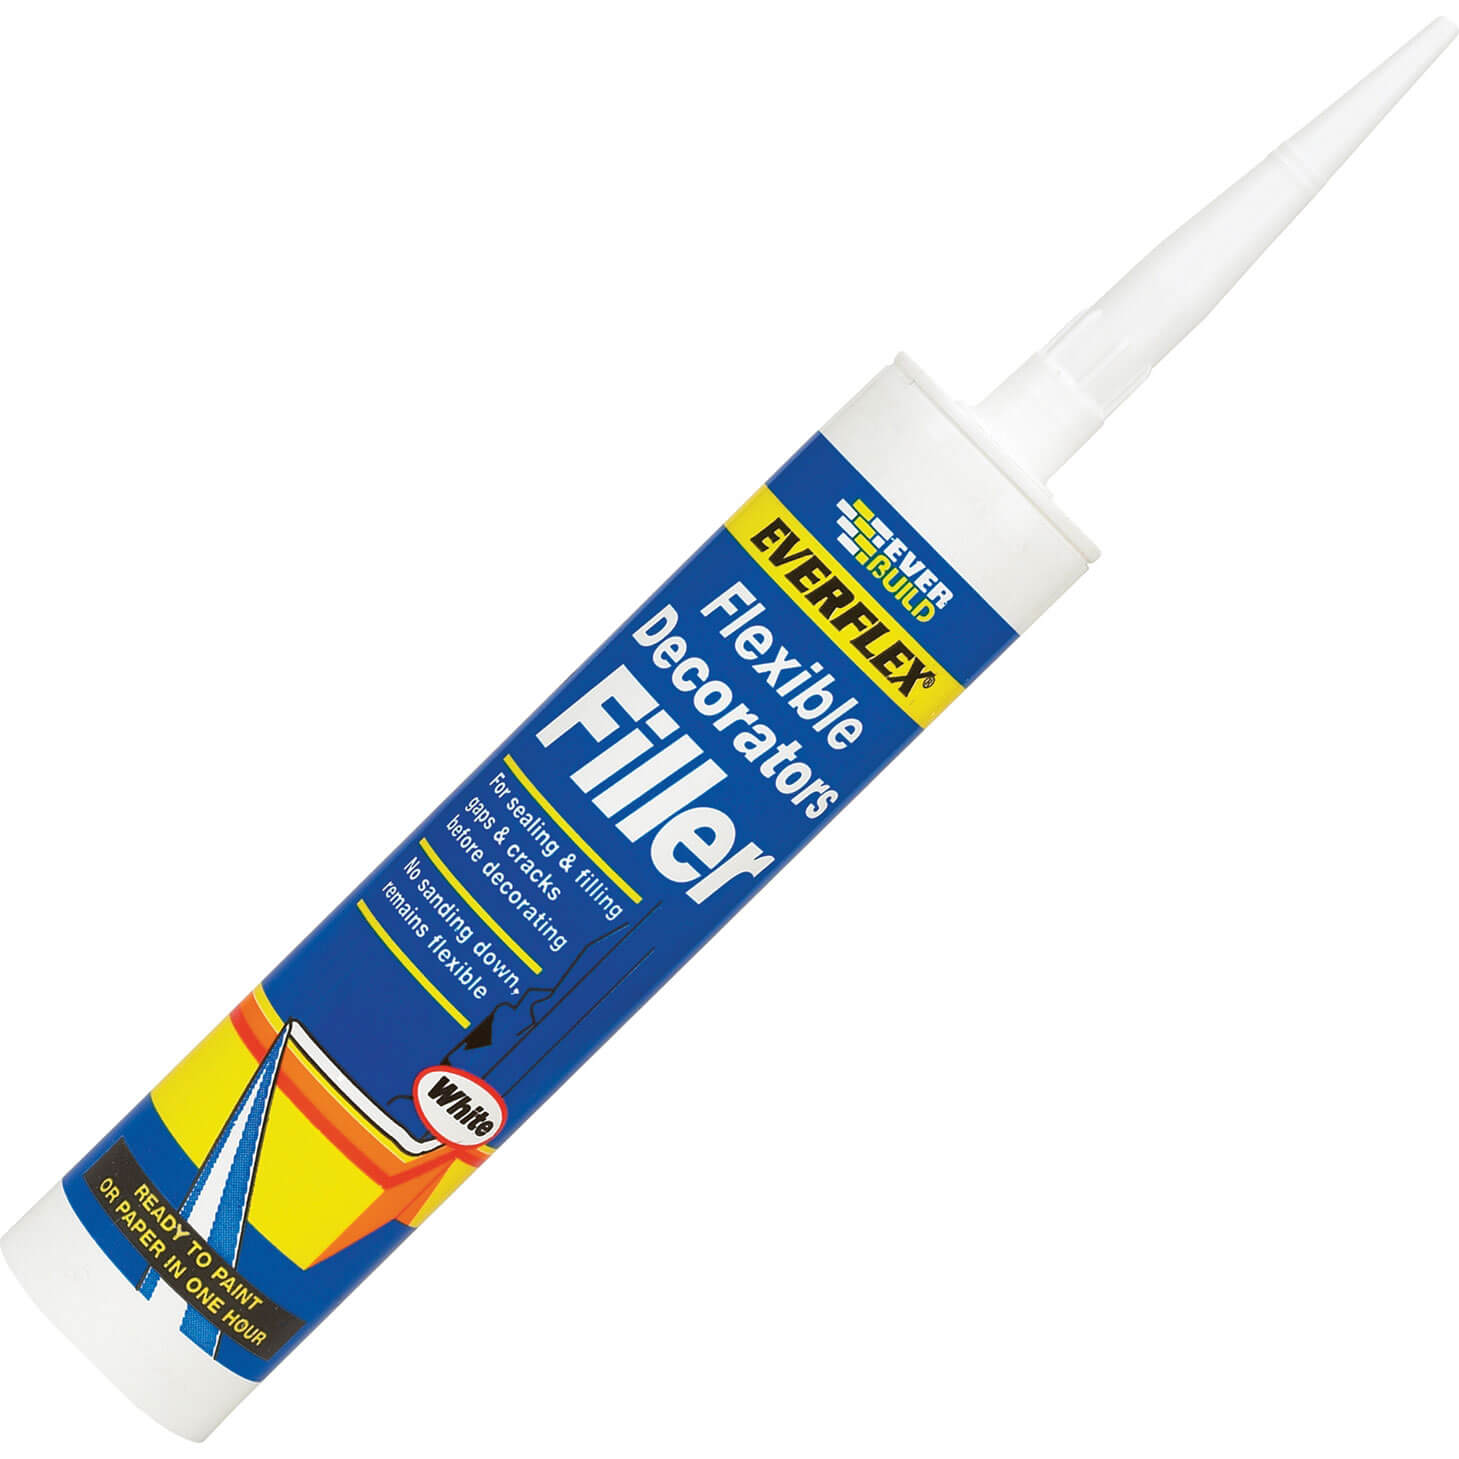 Tooled Up/Sealants & Adhesives/Fillers/Everbuild Flexible Decorat Filler White 310ml